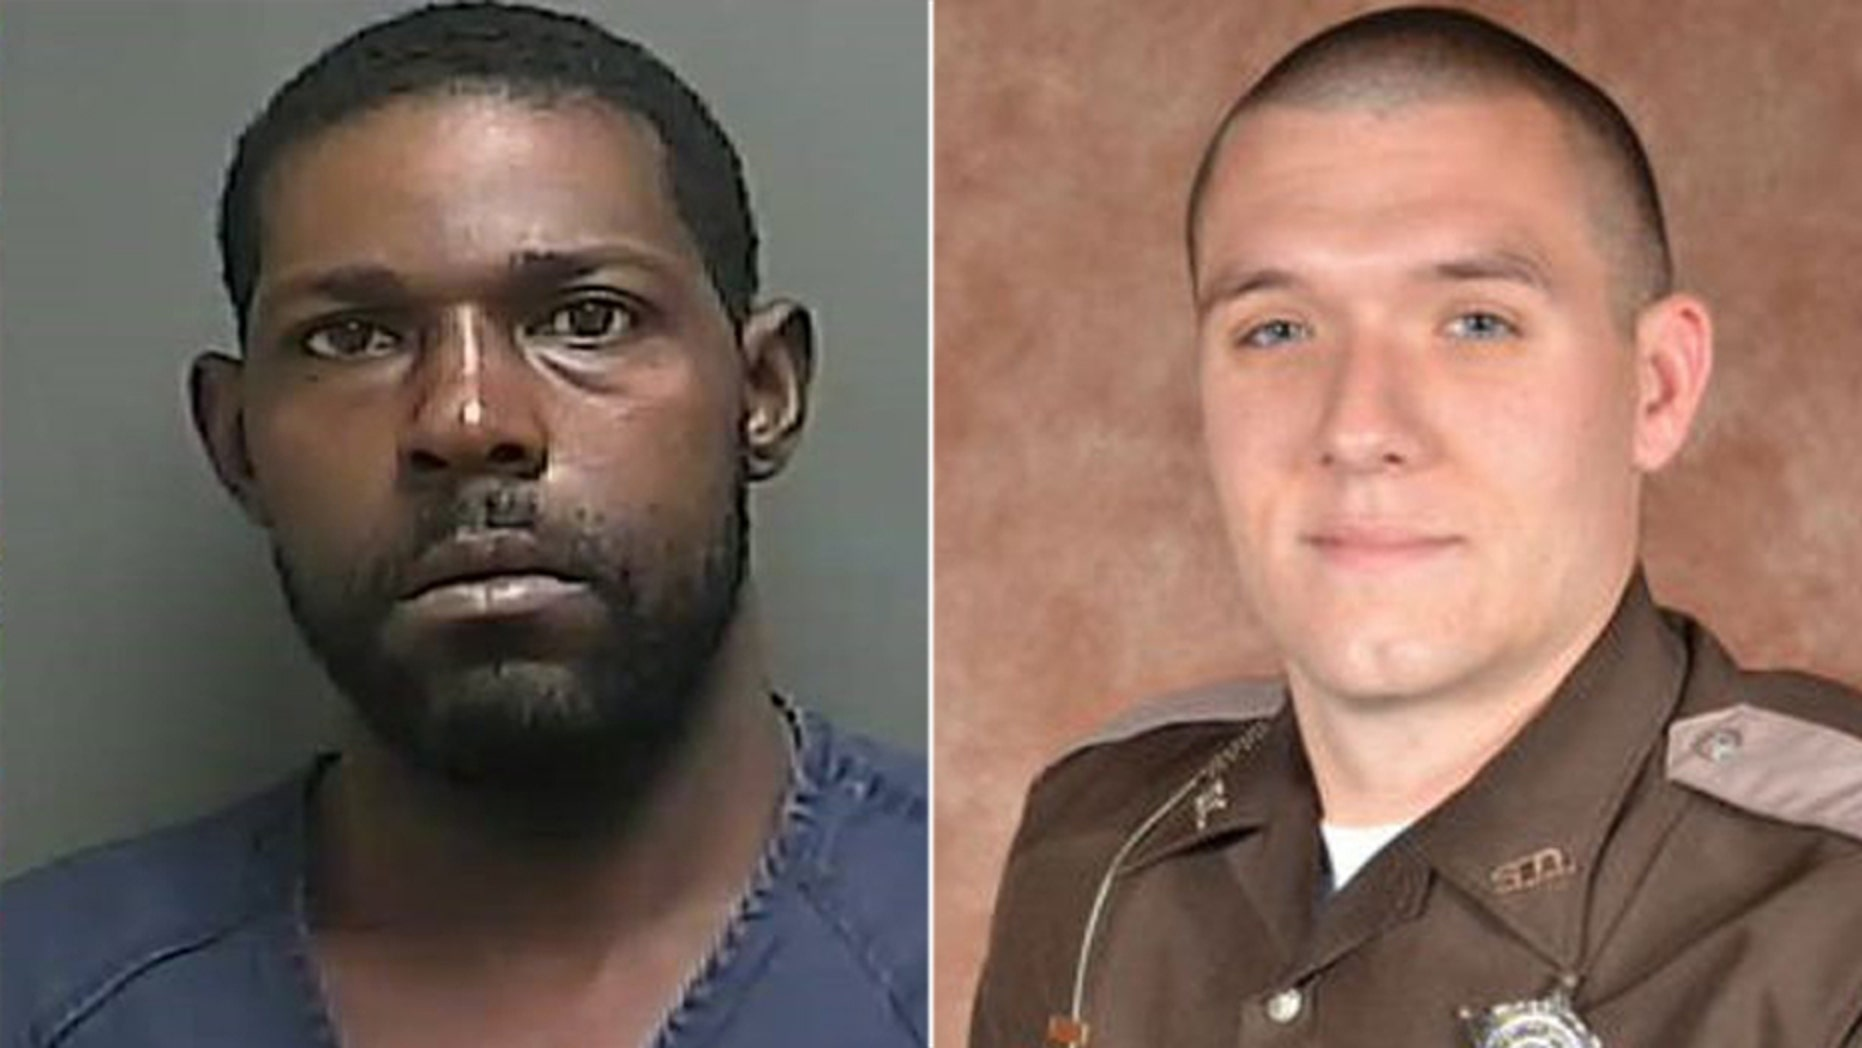 Bryson Small, left, reportedly assaulted the mother and sister of slain Howard County Deputy Carl Koontz, right.